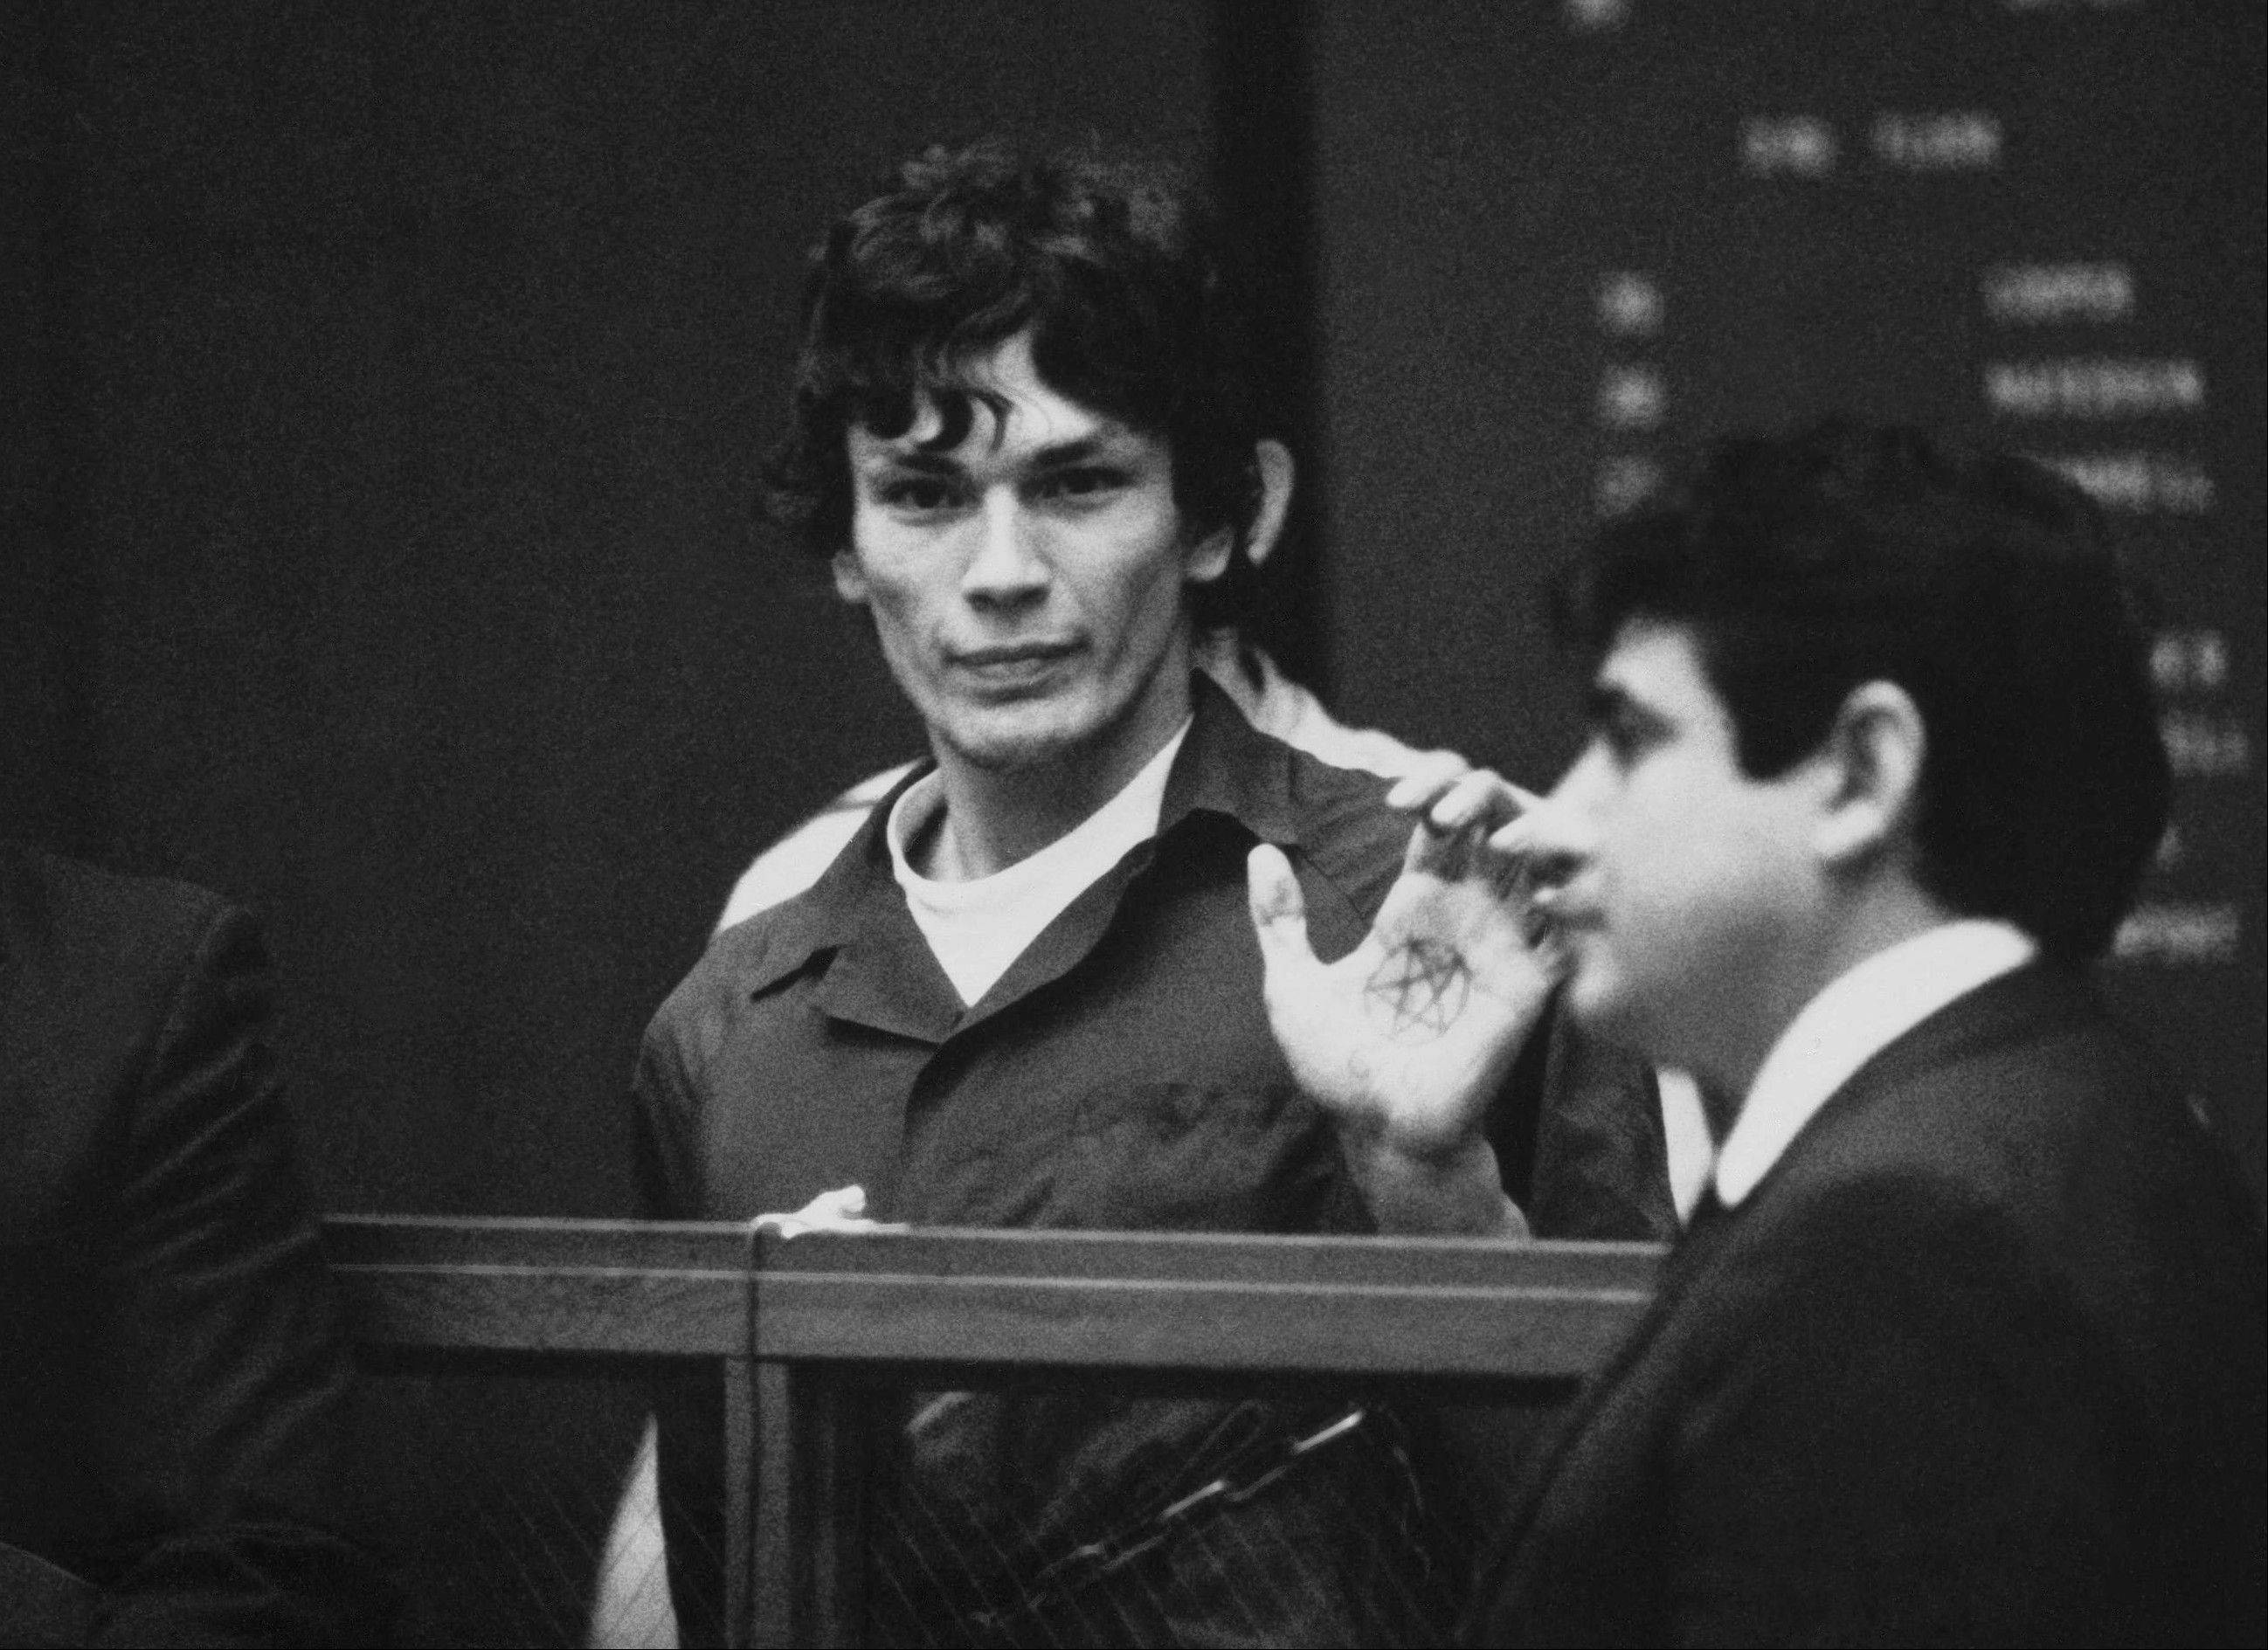 This 1985 file photo shows Richard Ramirez, center, know as the Night Stalker, shows a pentagram on the palm of his hand in court. California corrections officials say convicted serial killer Ramirez, known as the Night Stalker, has died in prison.